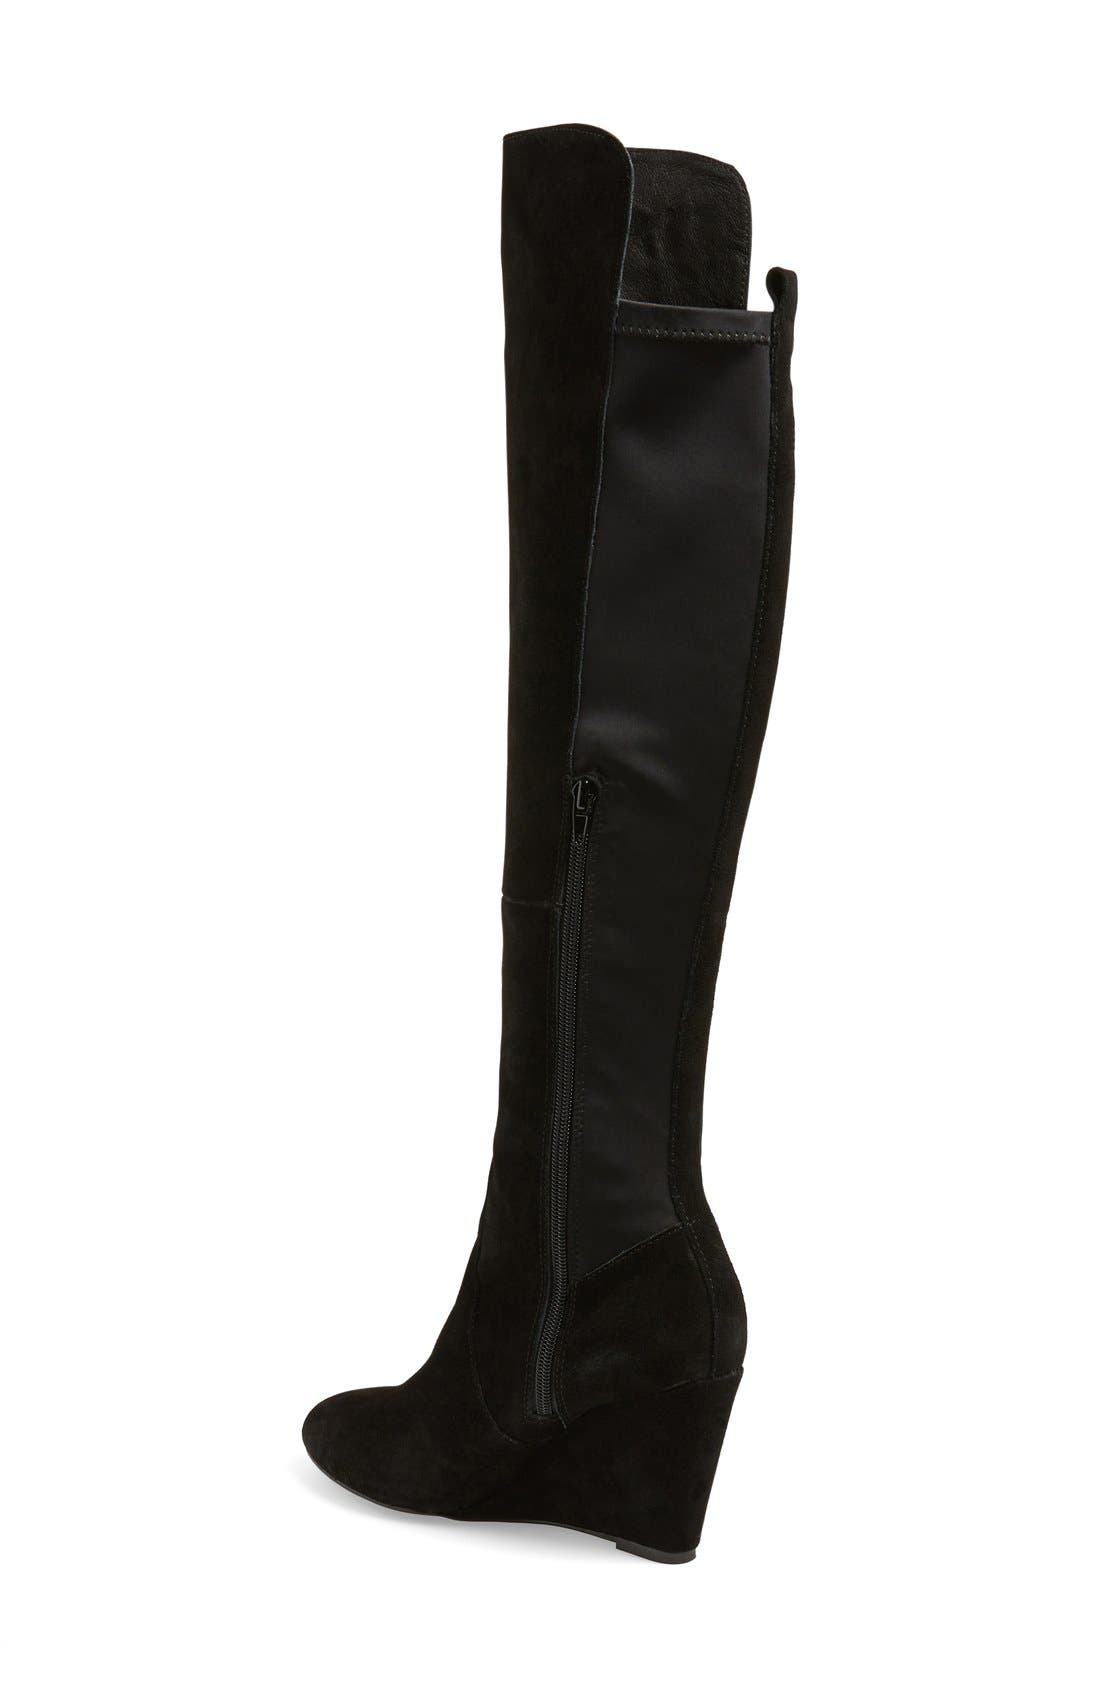 'Edie' Over the Knee Boot,                             Alternate thumbnail 2, color,                             002